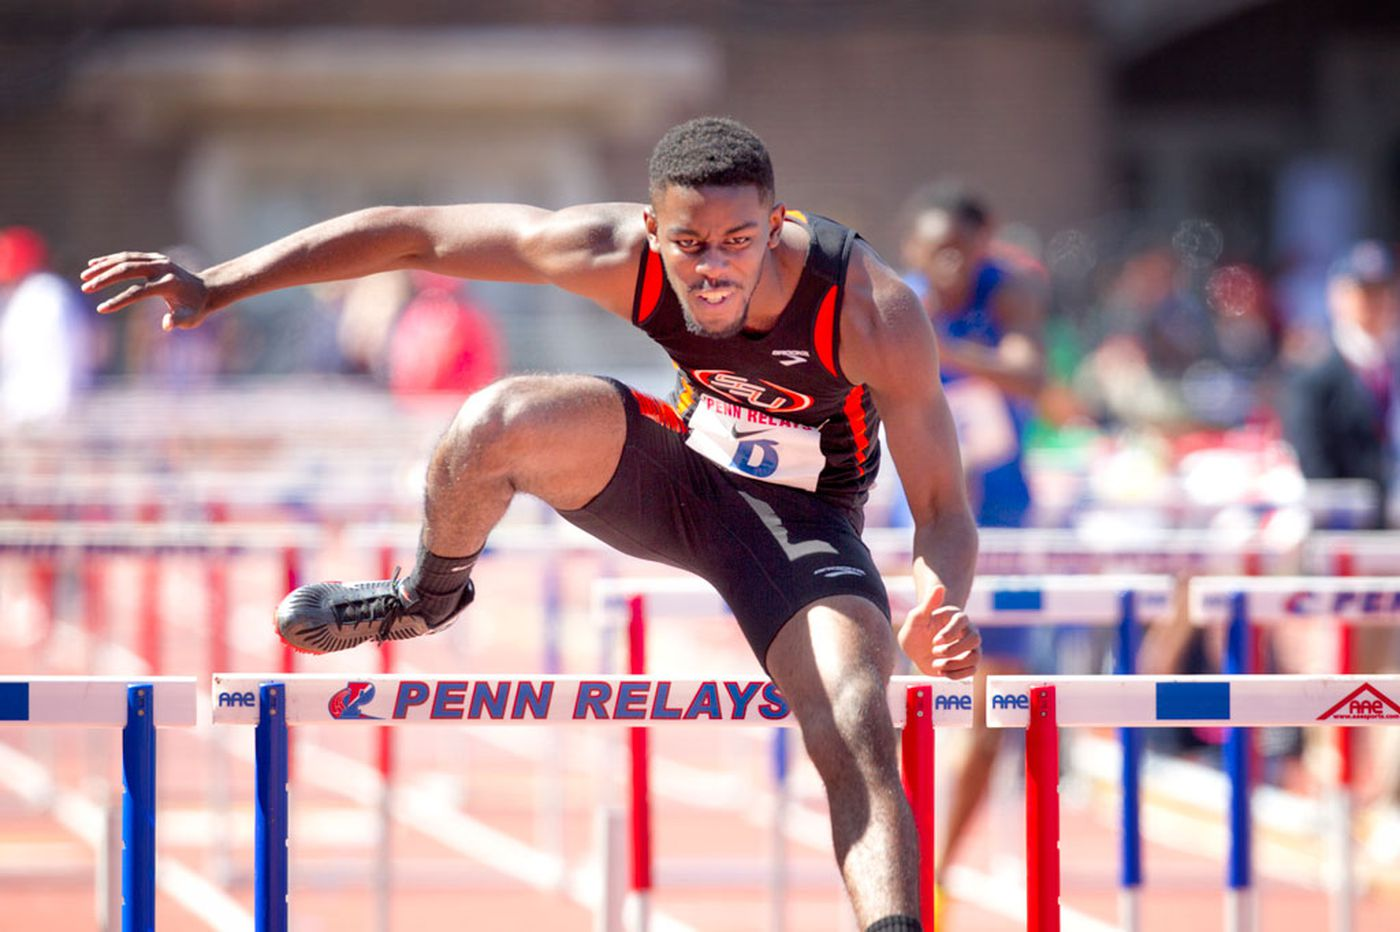 Penn Relays to celebrate 100th anniversary of participation by Historically Black Colleges and Universities